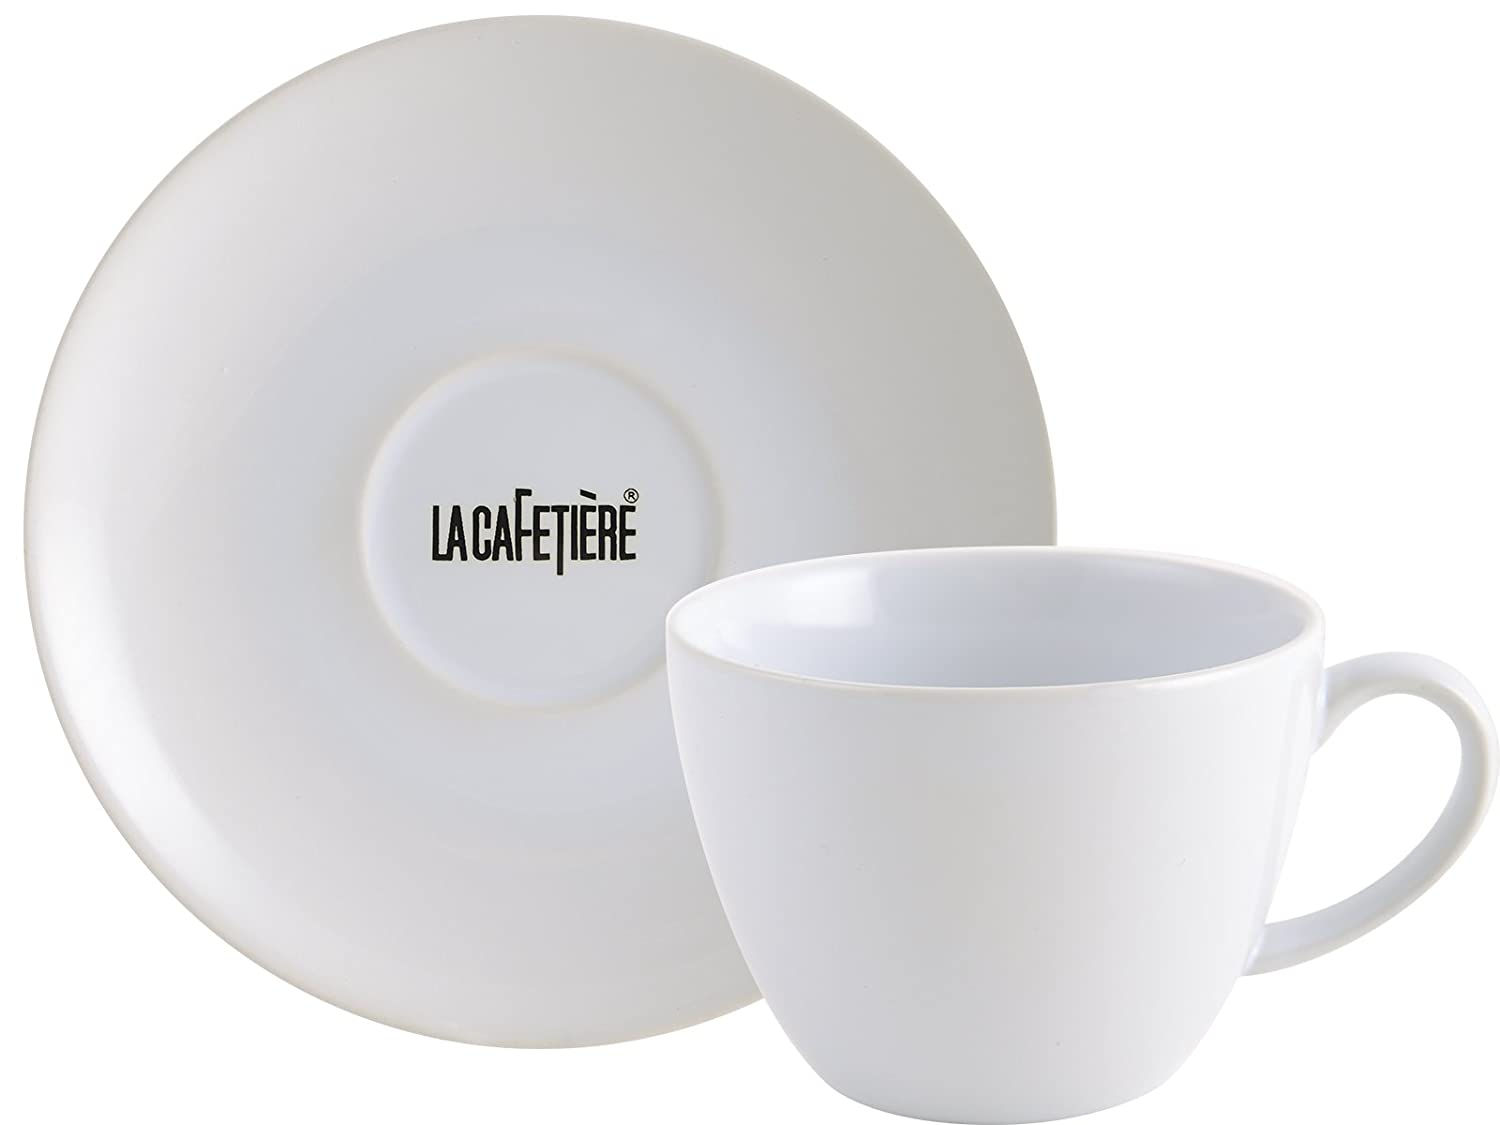 Creative Tops La Cafetière Decal ceramic Coffee Cup and Saucer, White, 450ml (15 fl oz) 5153370